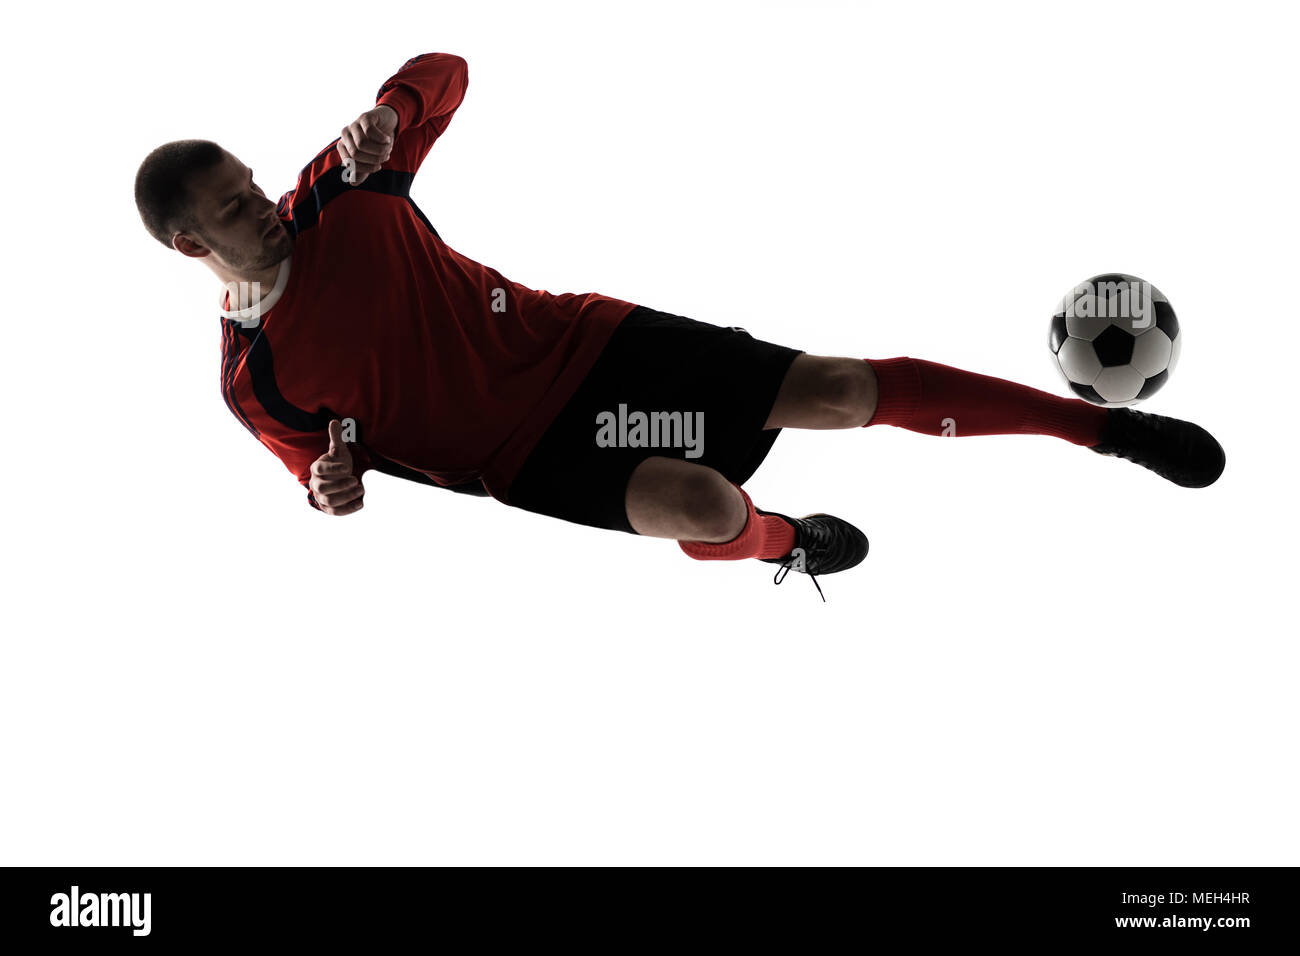 one caucasian soccer player man playing kicking in silhouette isolated on white background - Stock Image